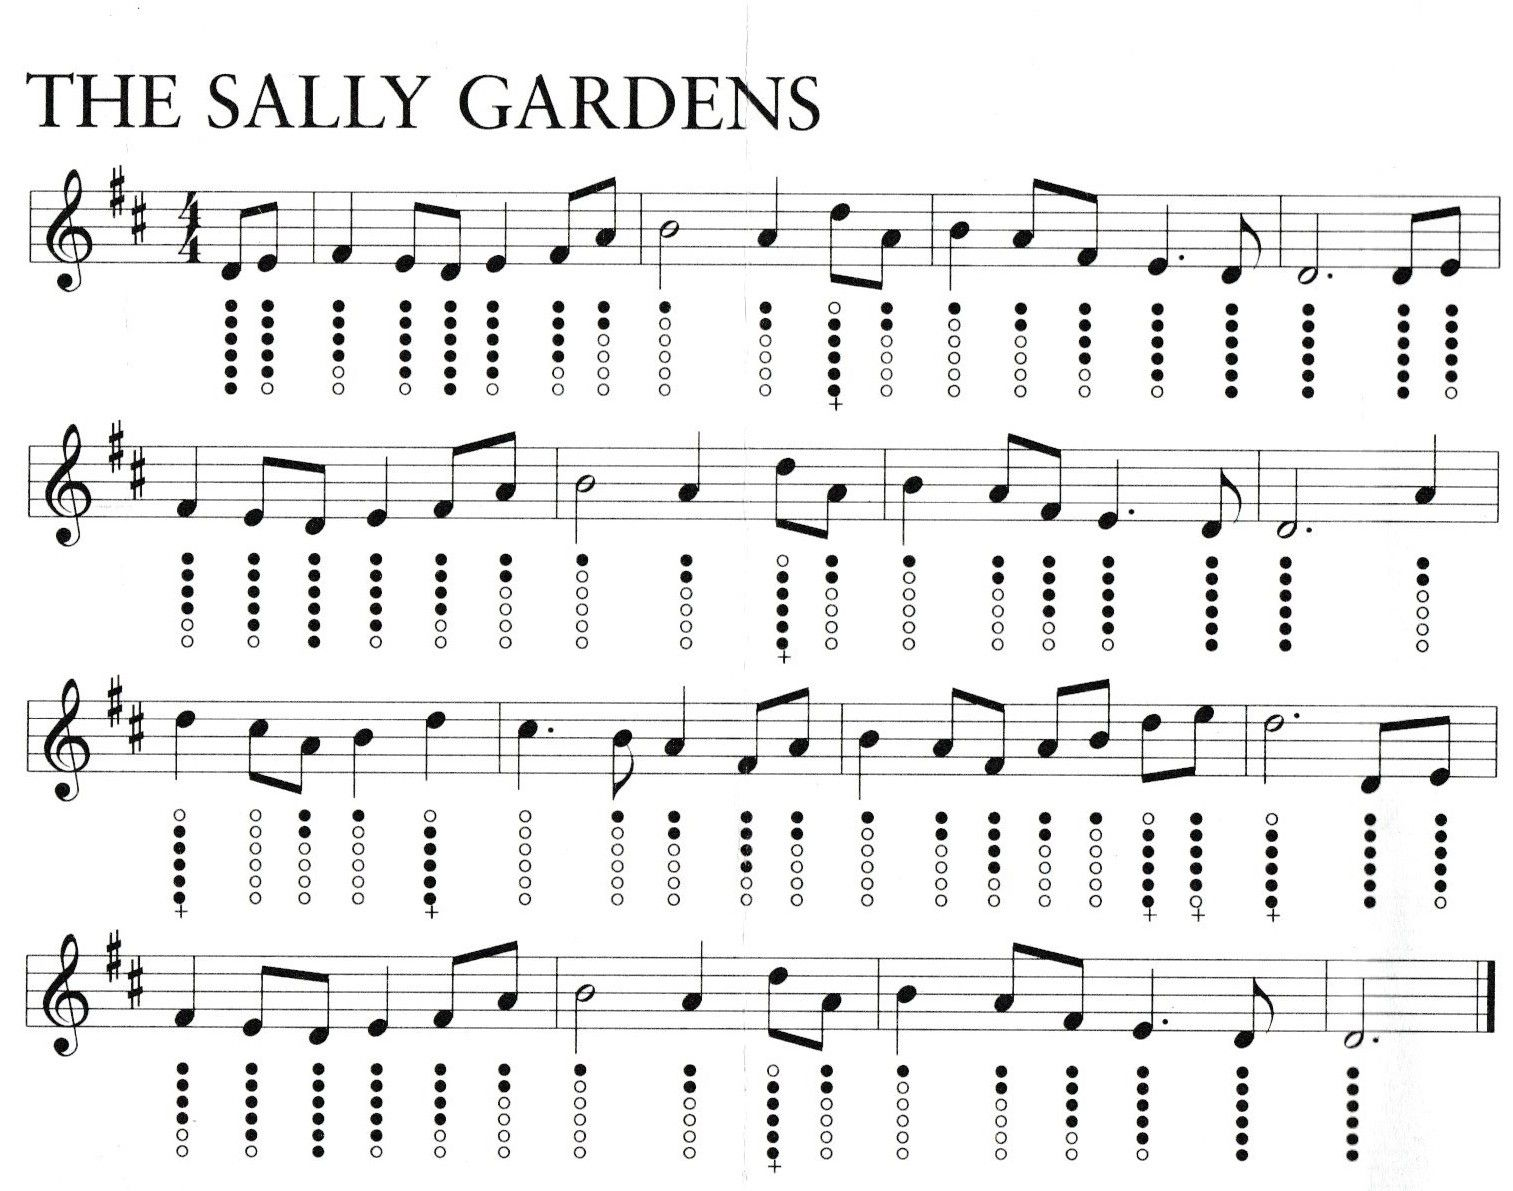 6ea11db366d5968d24c218ddb9d92f82 - The Sally Gardens Tin Whistle Notes